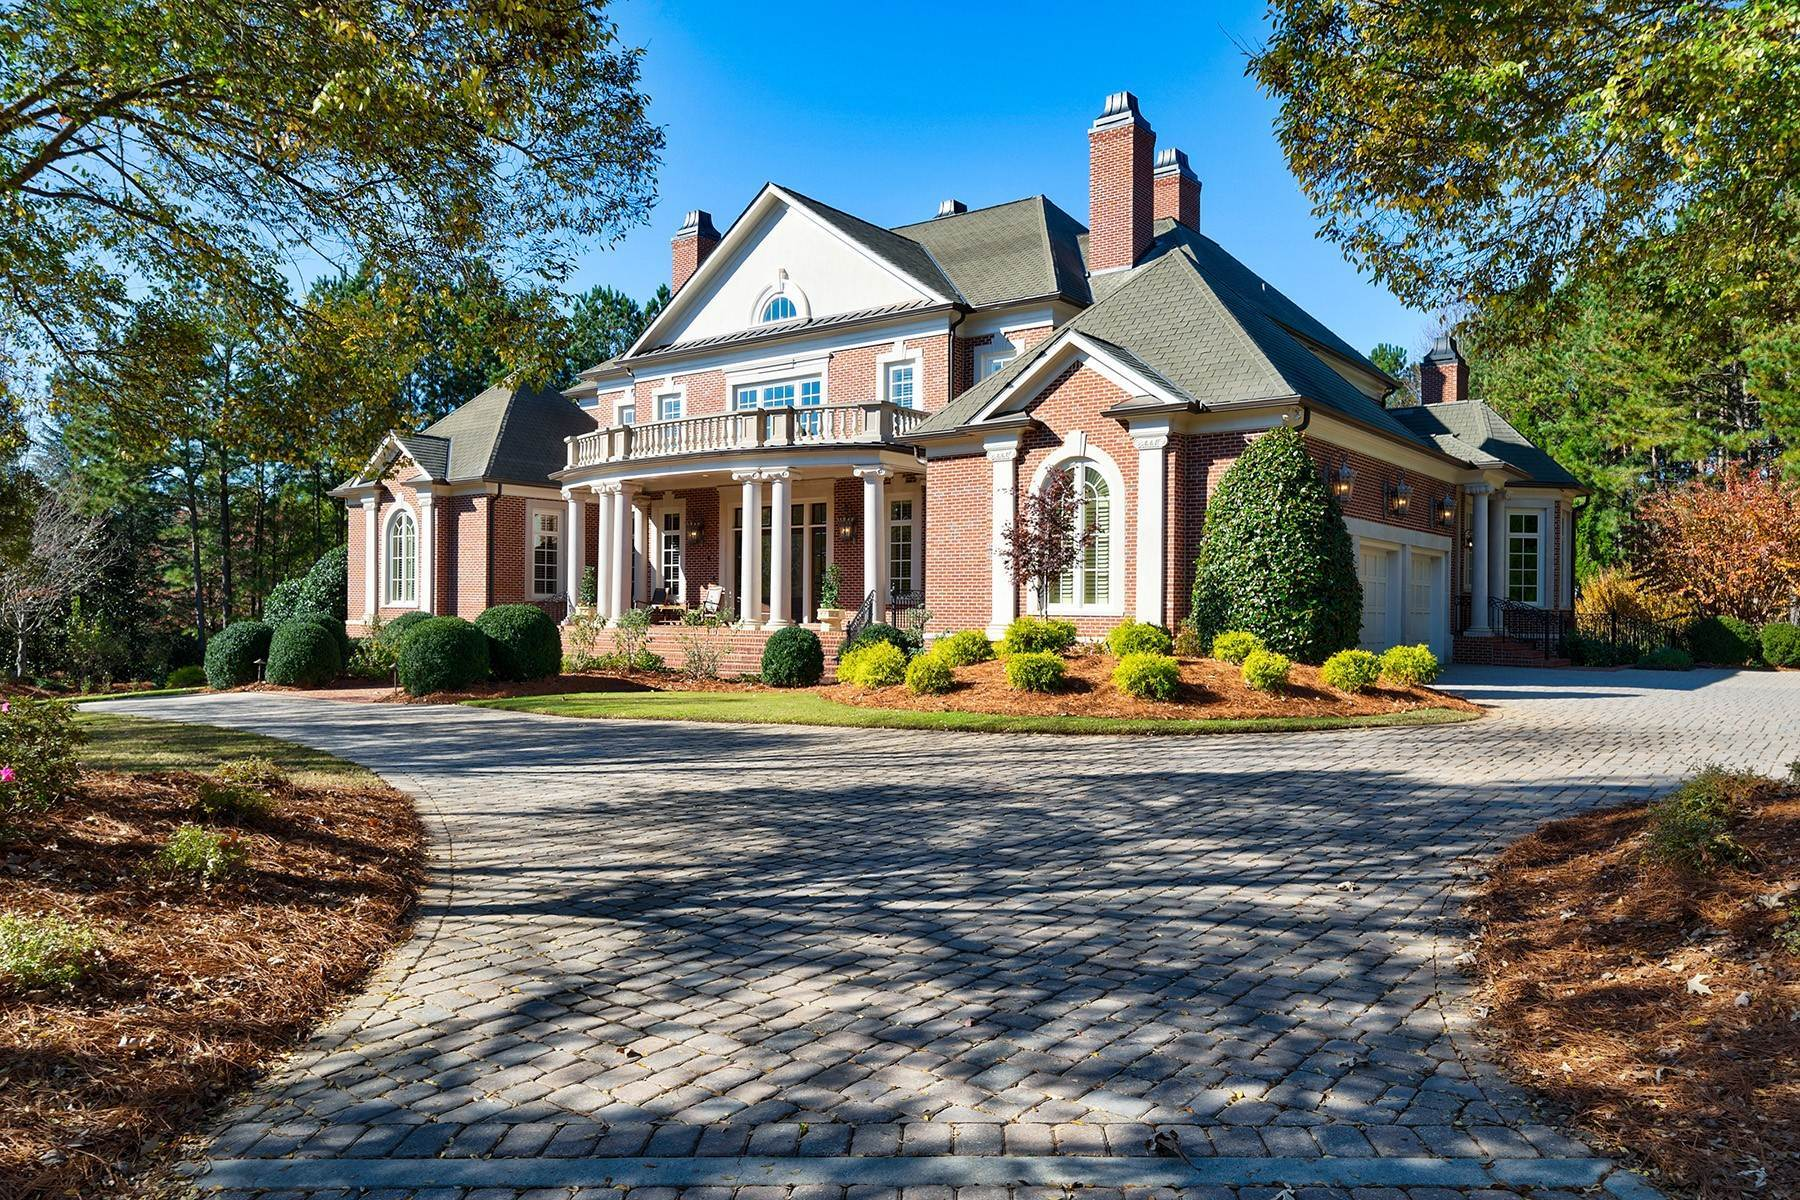 Single Family Homes for Sale at Fabulous Find in the River Club 4504 Whitestone Way Suwanee, Georgia 30024 United States